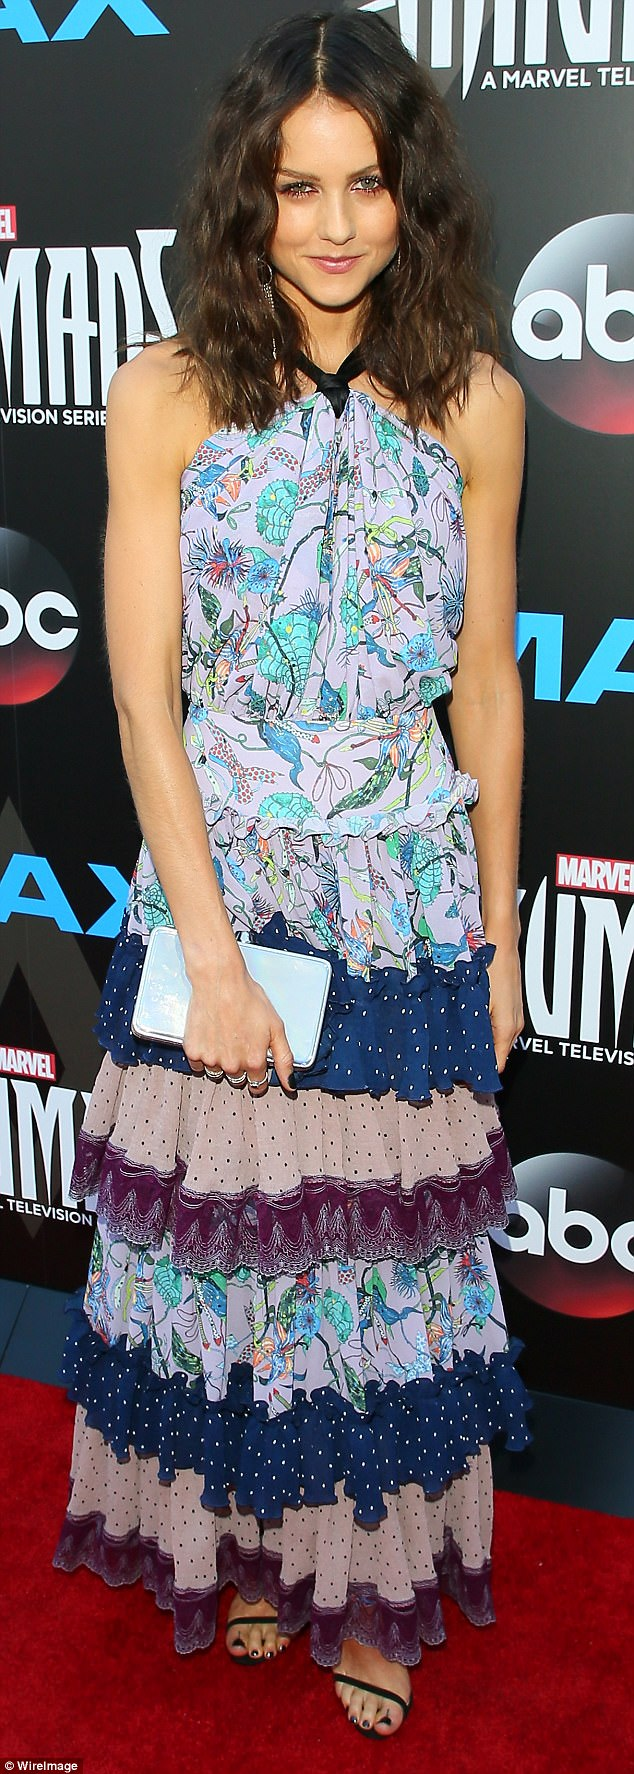 Super role: Isabelle Cornish's star is rising in Hollywood, thanks to her casting in the upcoming Marvel TV series Inhumans